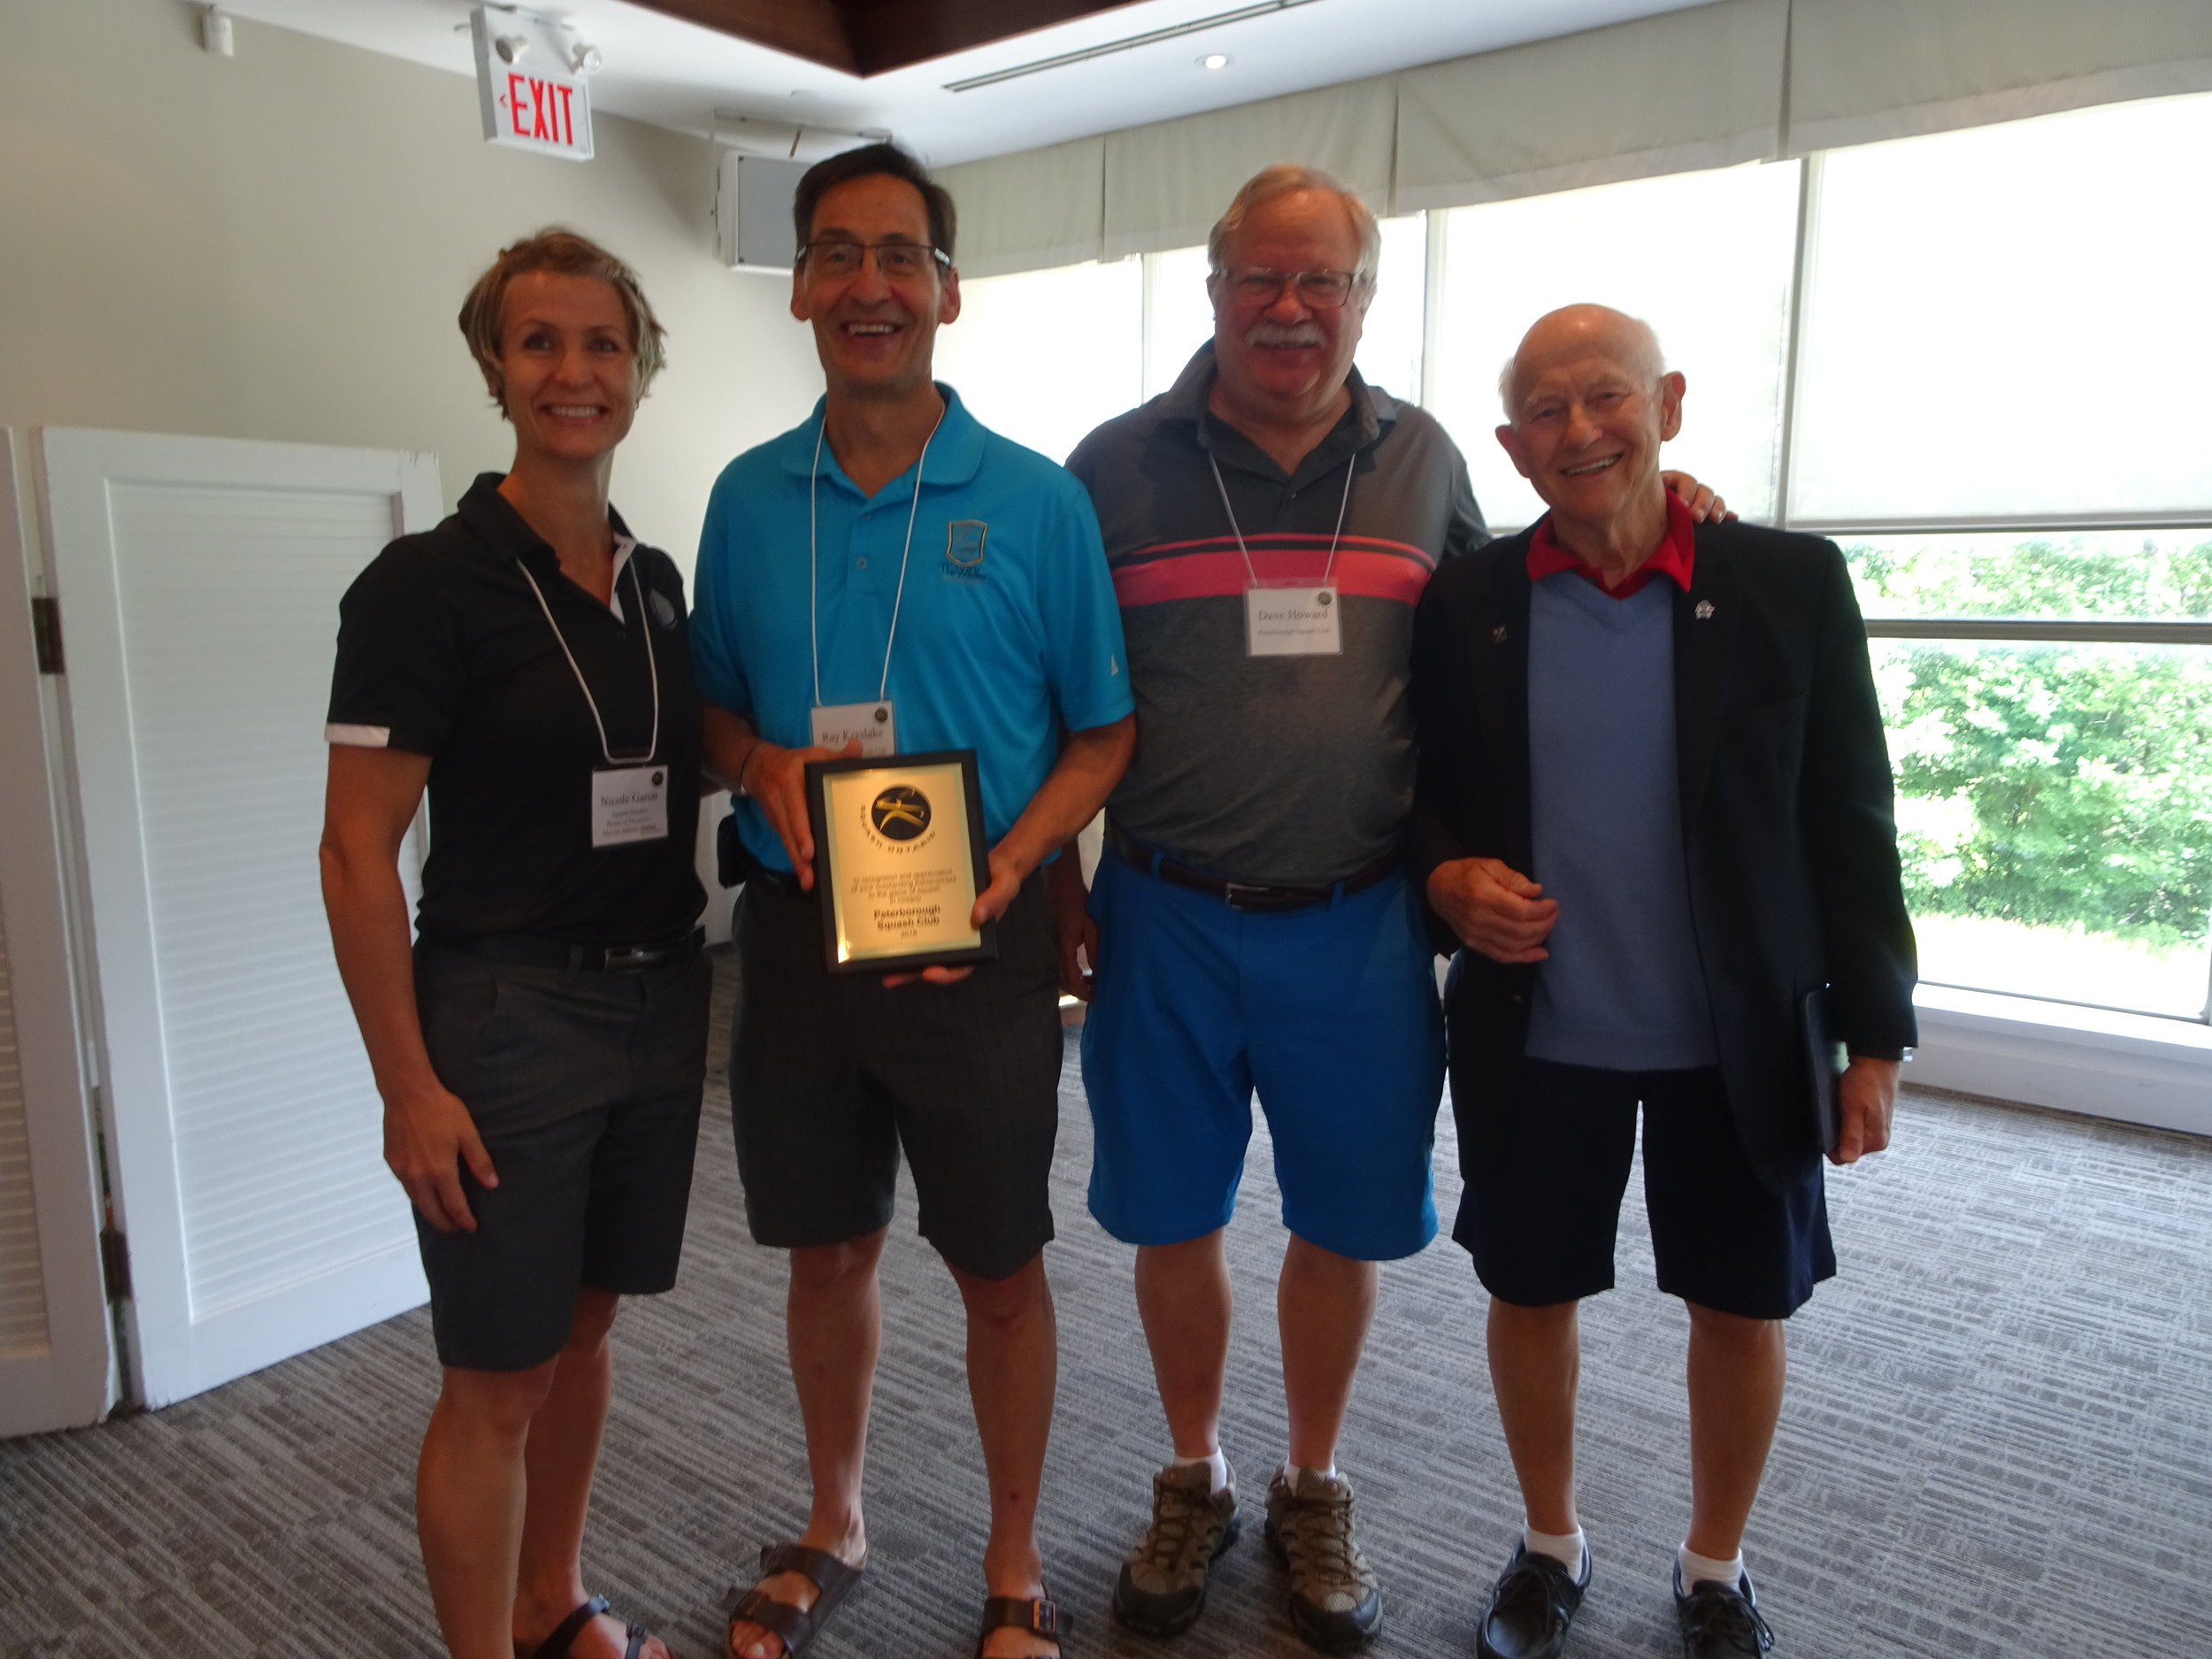 Ray Kerslake accepting the Peterborough Squash Club award pictured with Squash Ontario Board Member Nicole Garon, Canadian Officiating Committee Chair and PSC member Dave Howard, and nominator Vincent Taylor.